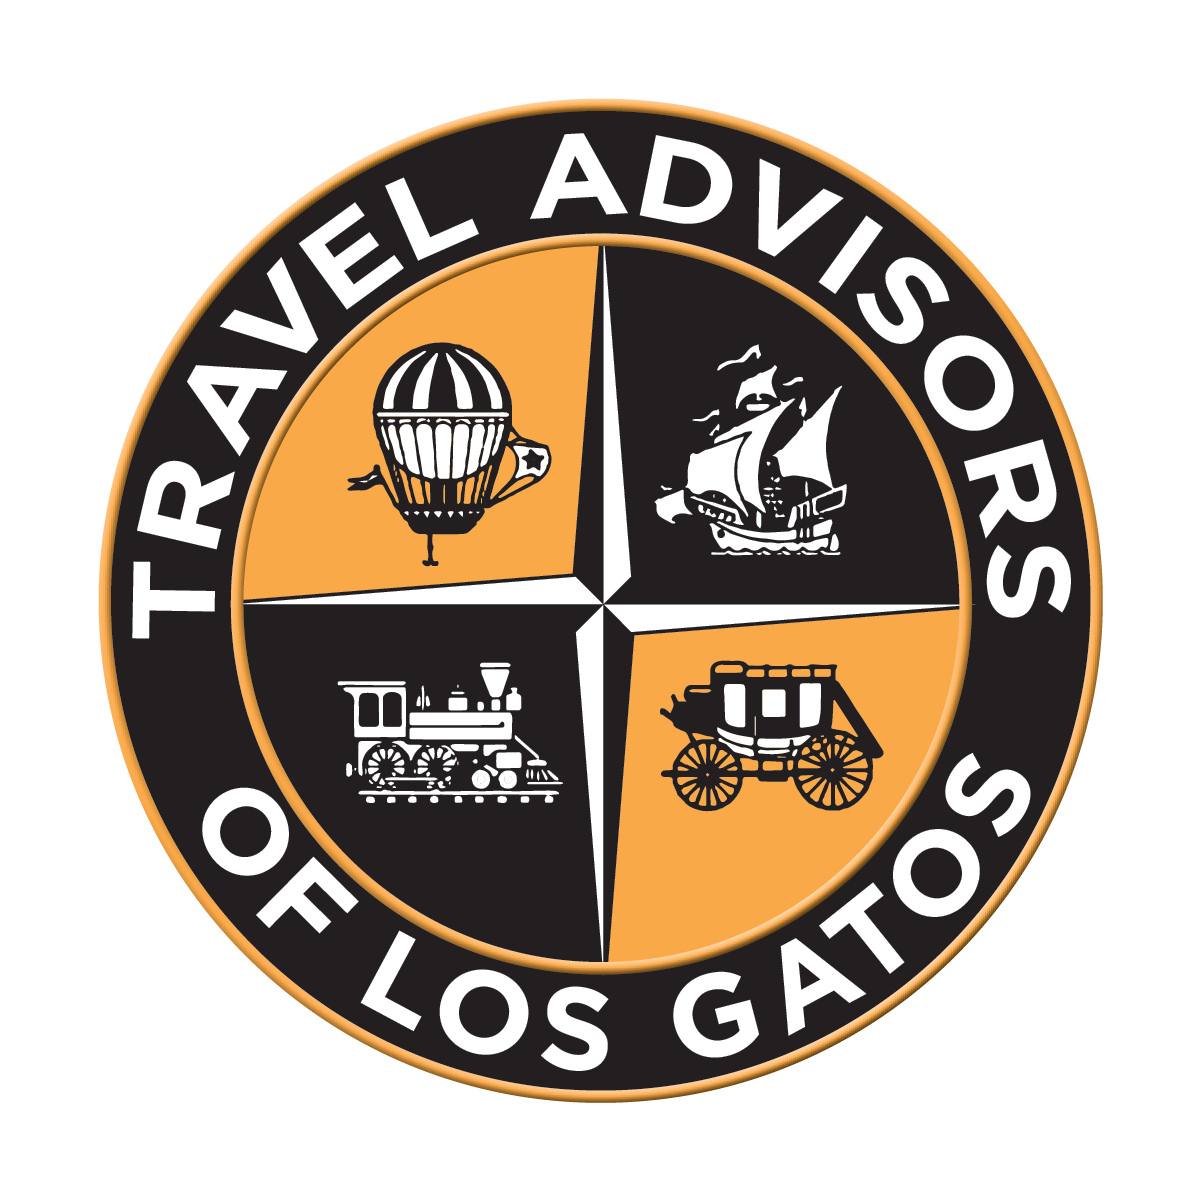 Travel Advisors of Los Gatos